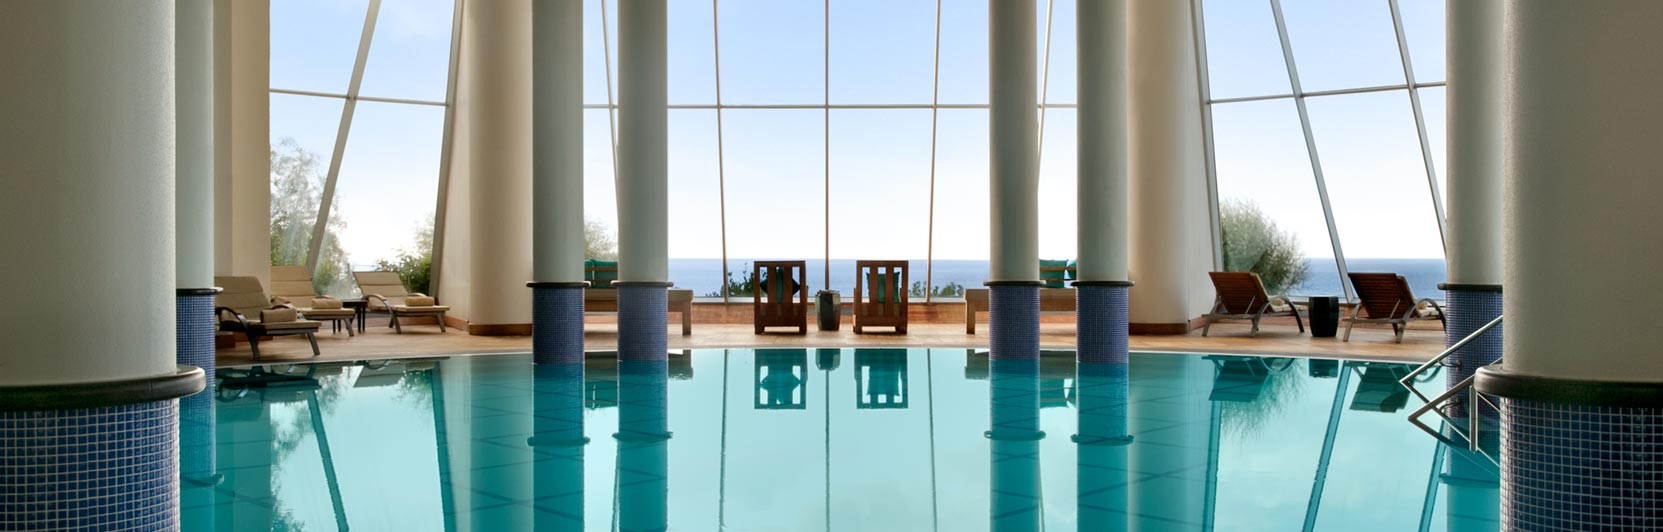 Architectural photography of indoor pool and lounge chairs from Kempinski Hotel Barbaros Bay in Turkey